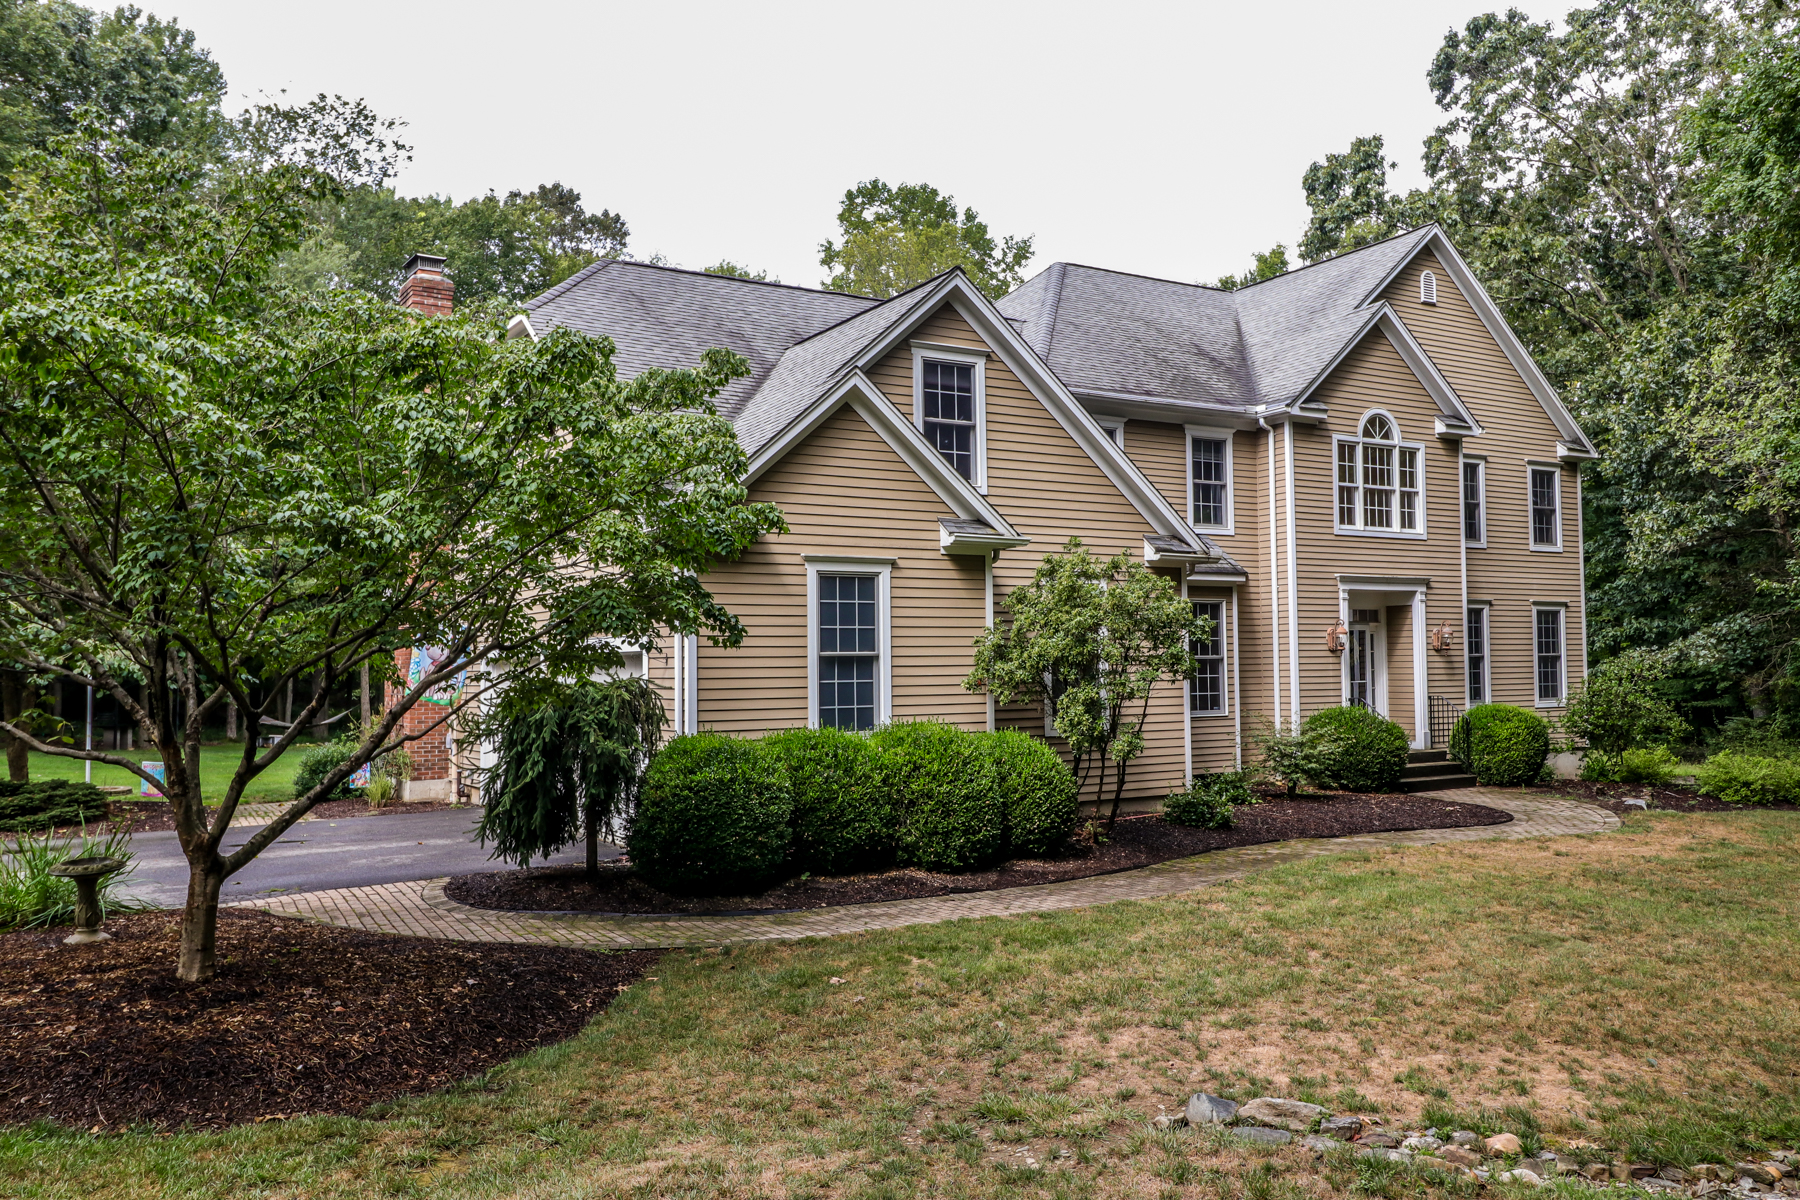 Single Family Homes for Active at Gracious Elegance 35 Obtuse Rocks Road Brookfield, Connecticut 06804 United States